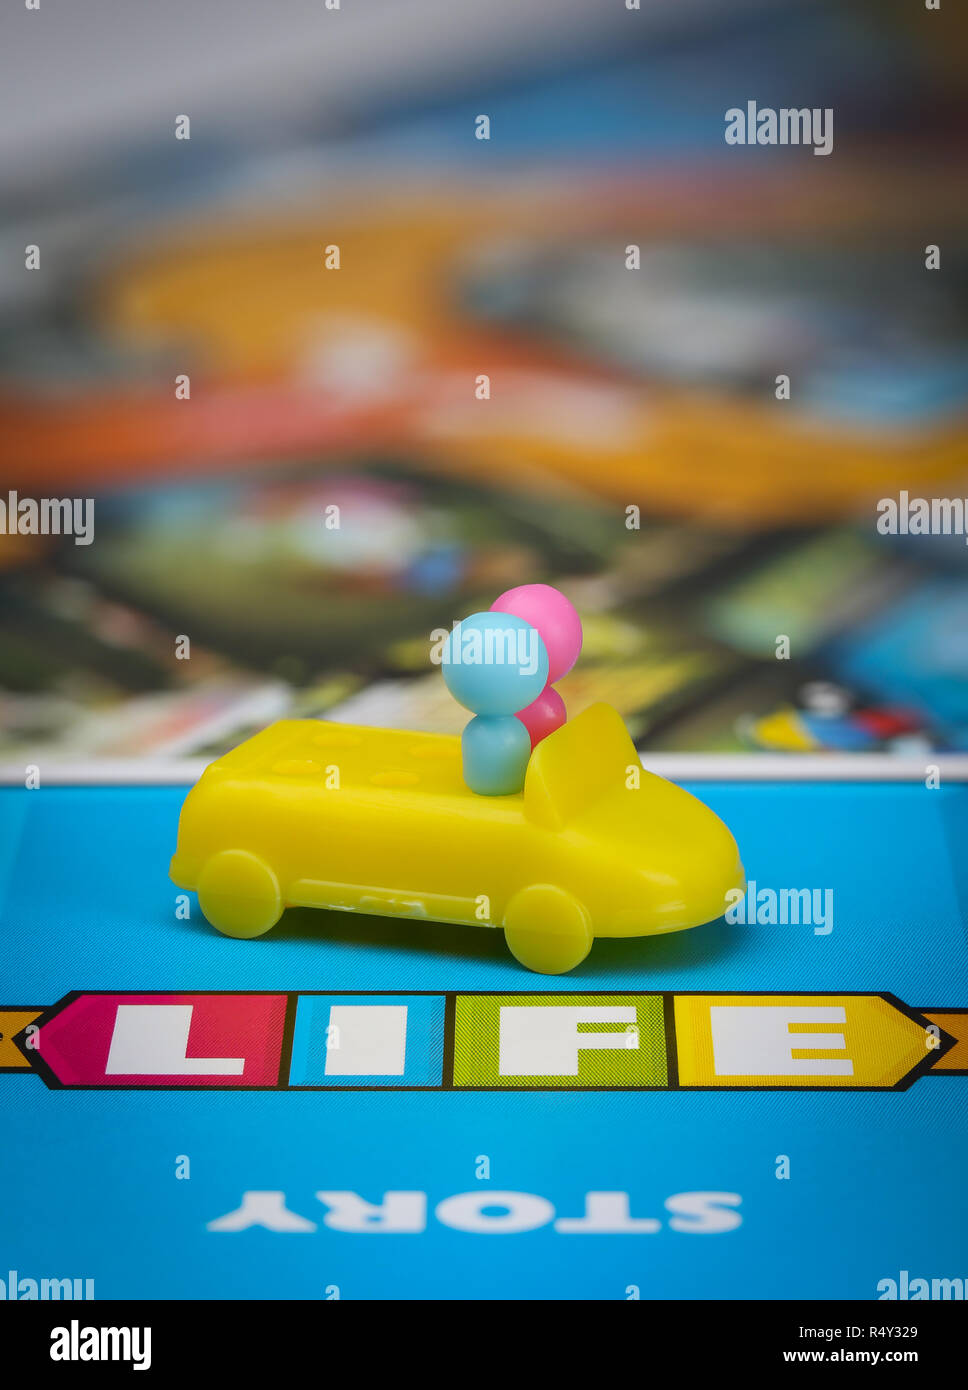 Game of Life board game - Stock Image